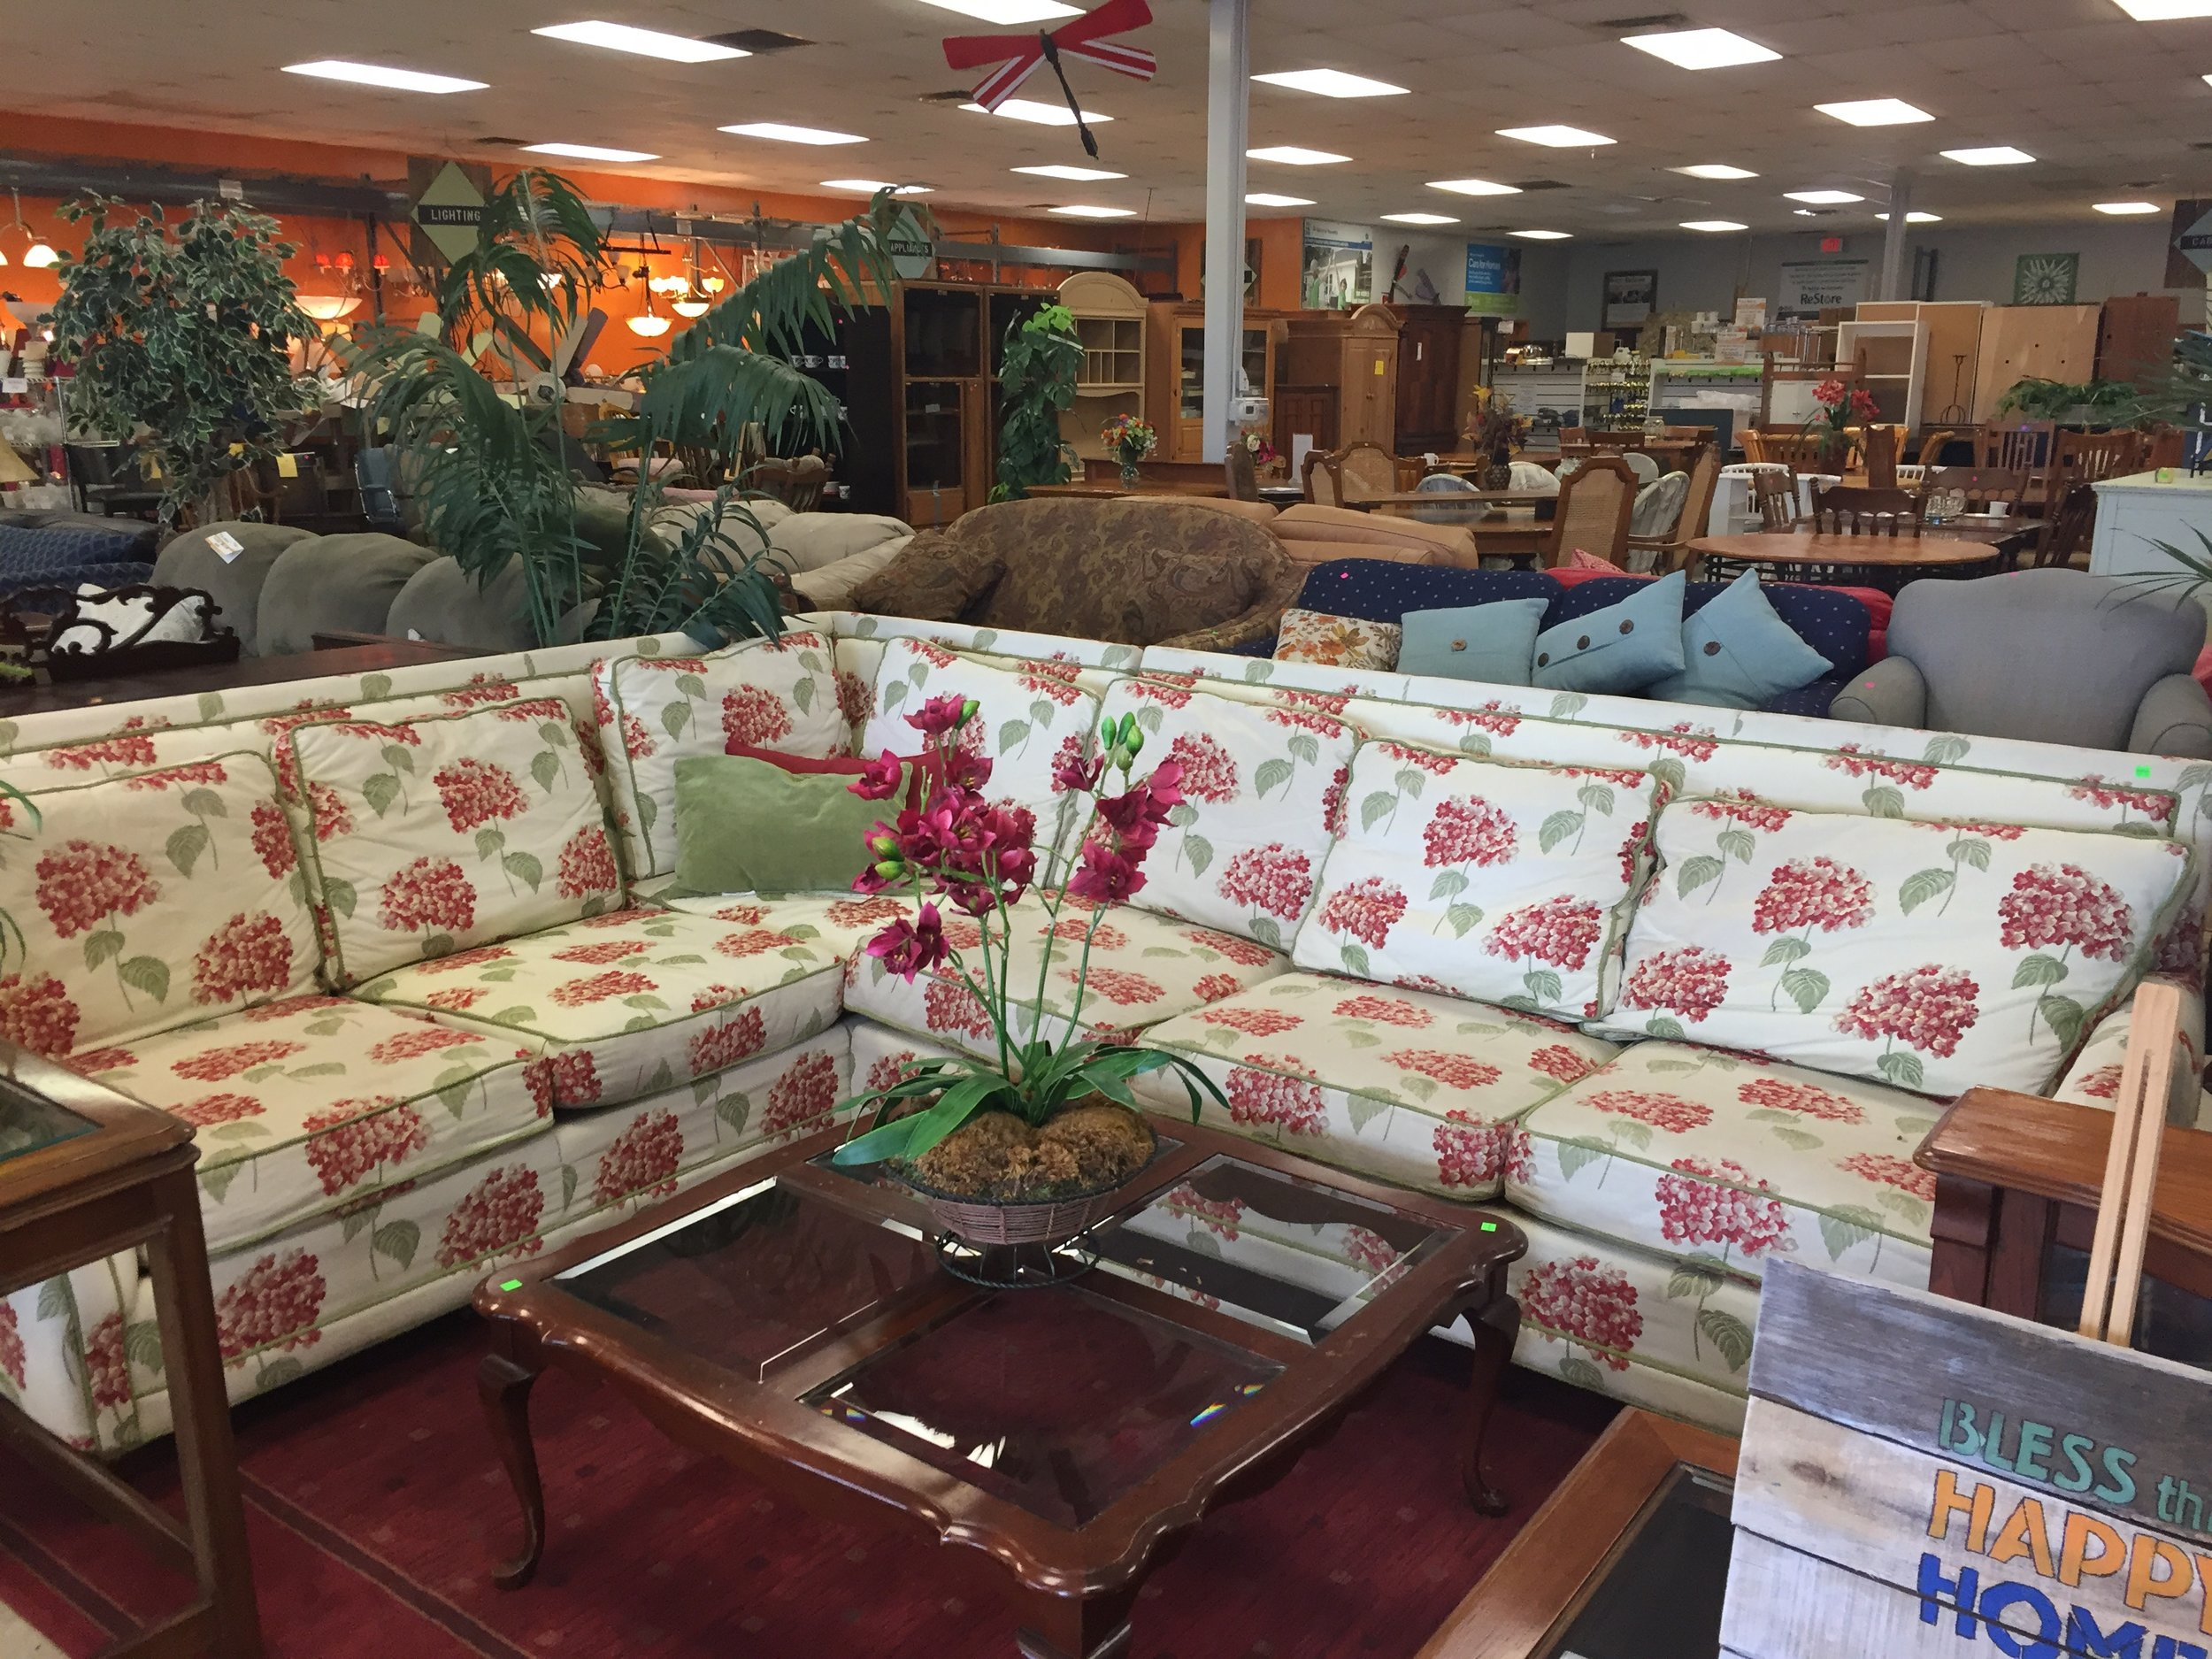 Sectional I bought for $105 at the Habitat Re-Store. My awesome upholsterer, Marc at AFC Upholstery,has quoted me about $1500 including fabric to recover. The sectionals online I was drawn to were in the $8000-10,000 range- not that I ever would spend that!